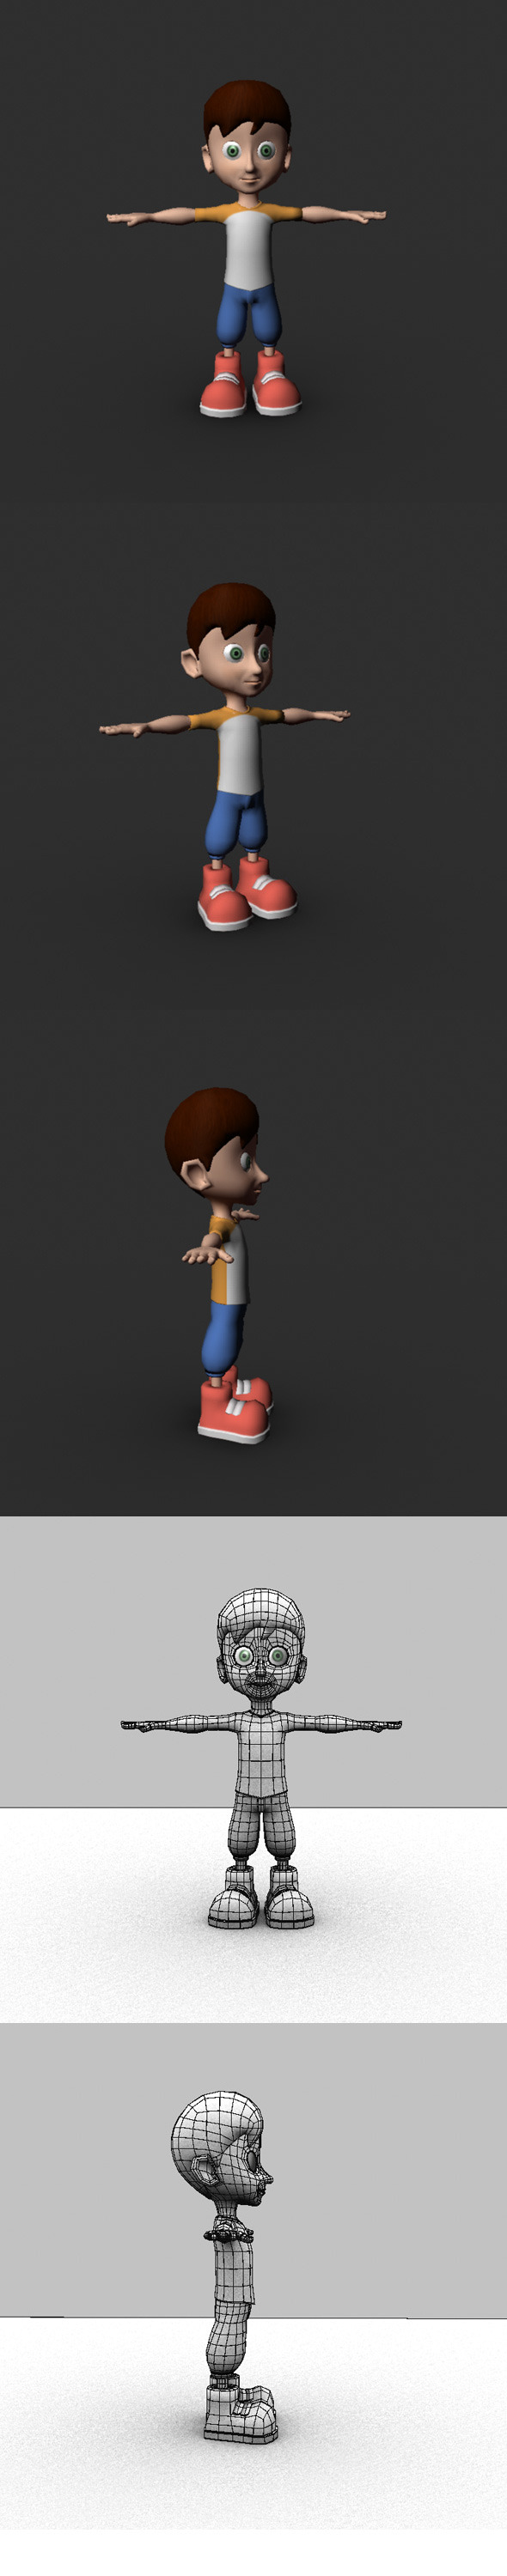 3DOcean Low Poly Cartoon Character 6841185